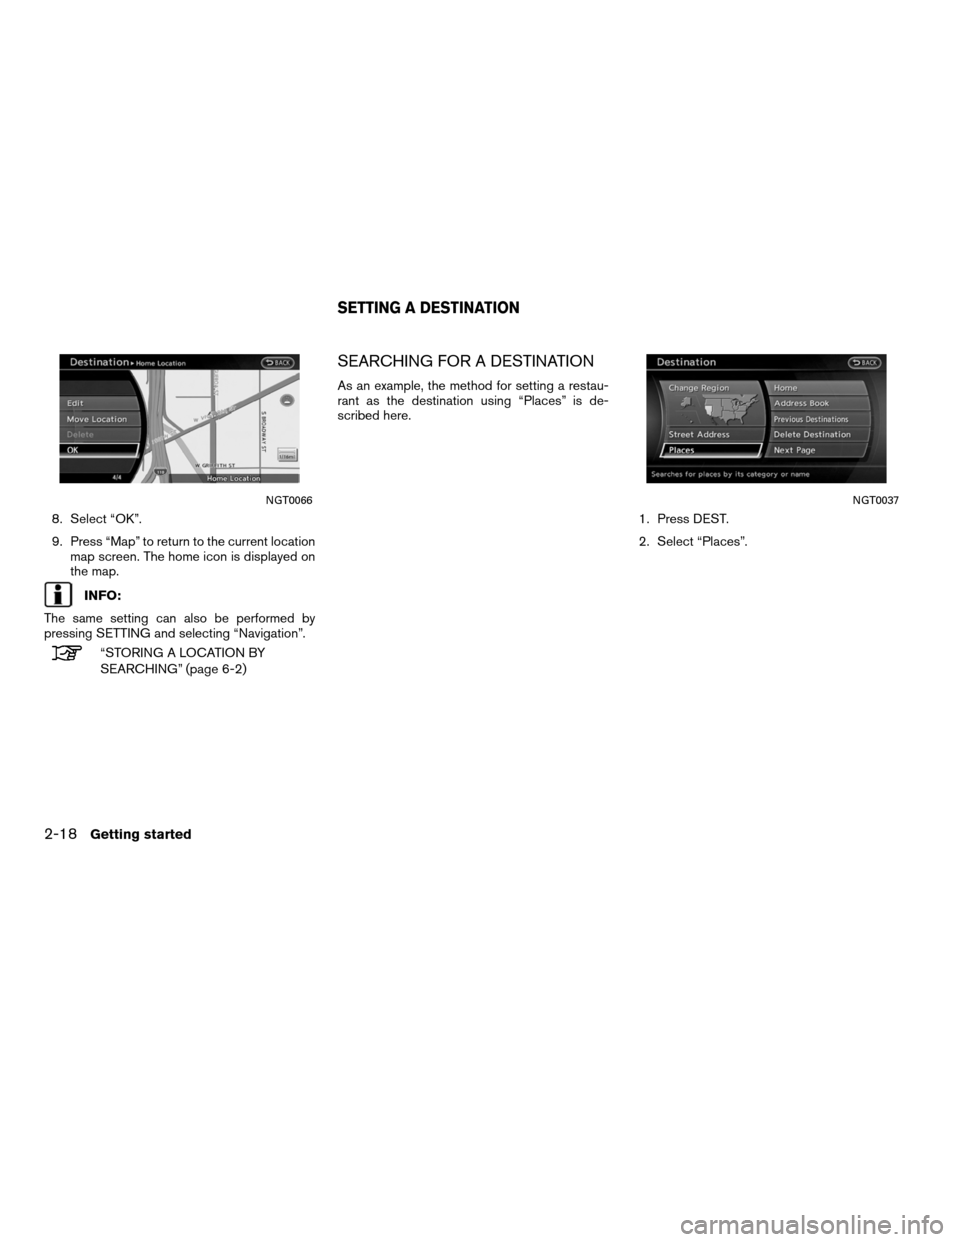 NISSAN ALTIMA COUPE 2011 D32 / 4.G Navigation Manual, Page 26